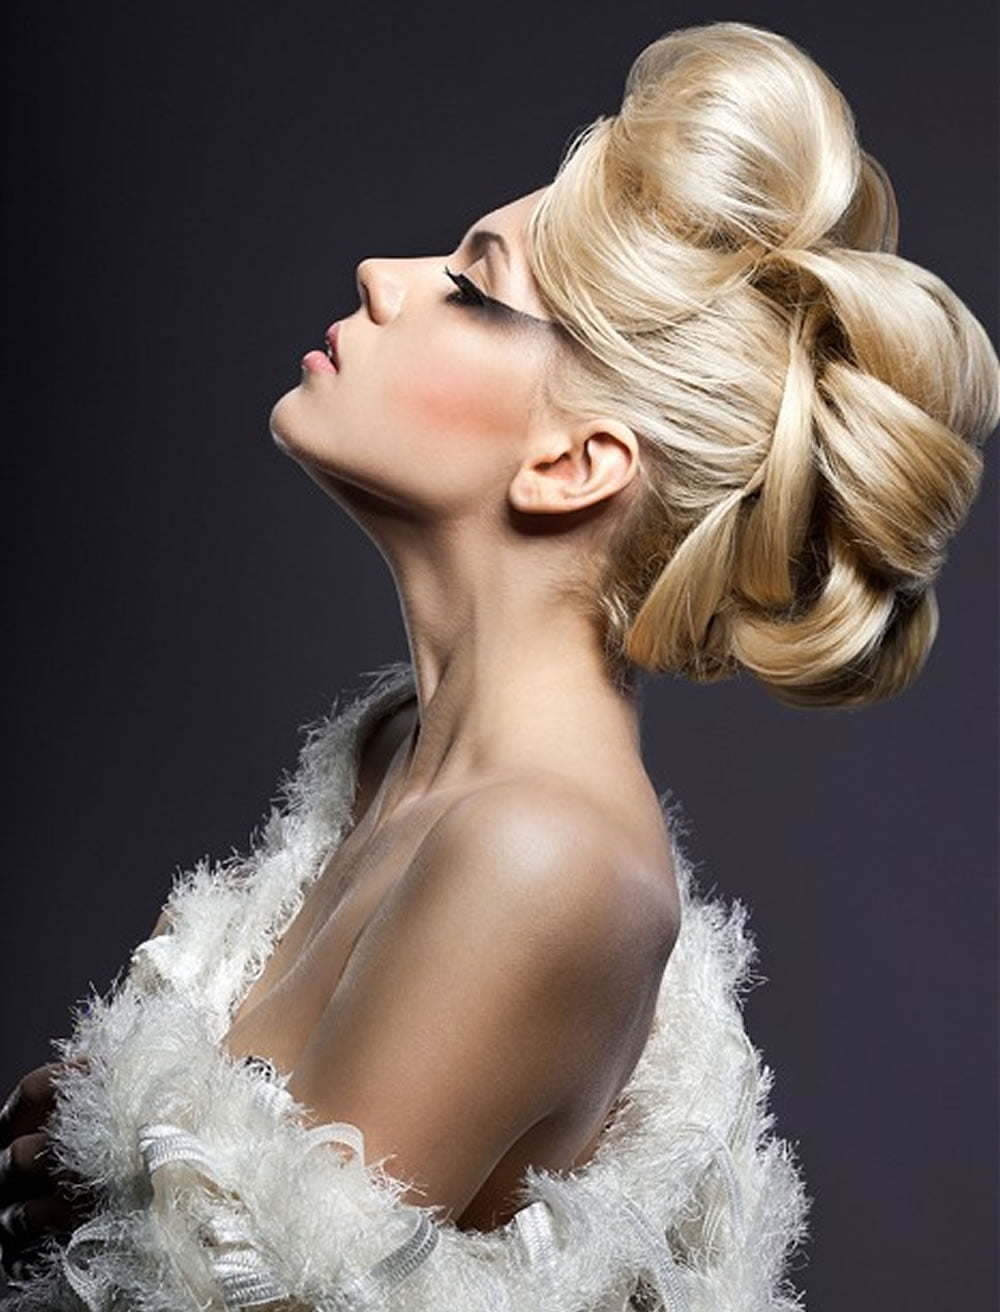 32 Perfect Updo Hairstyles For Prom 2017 2018 Round